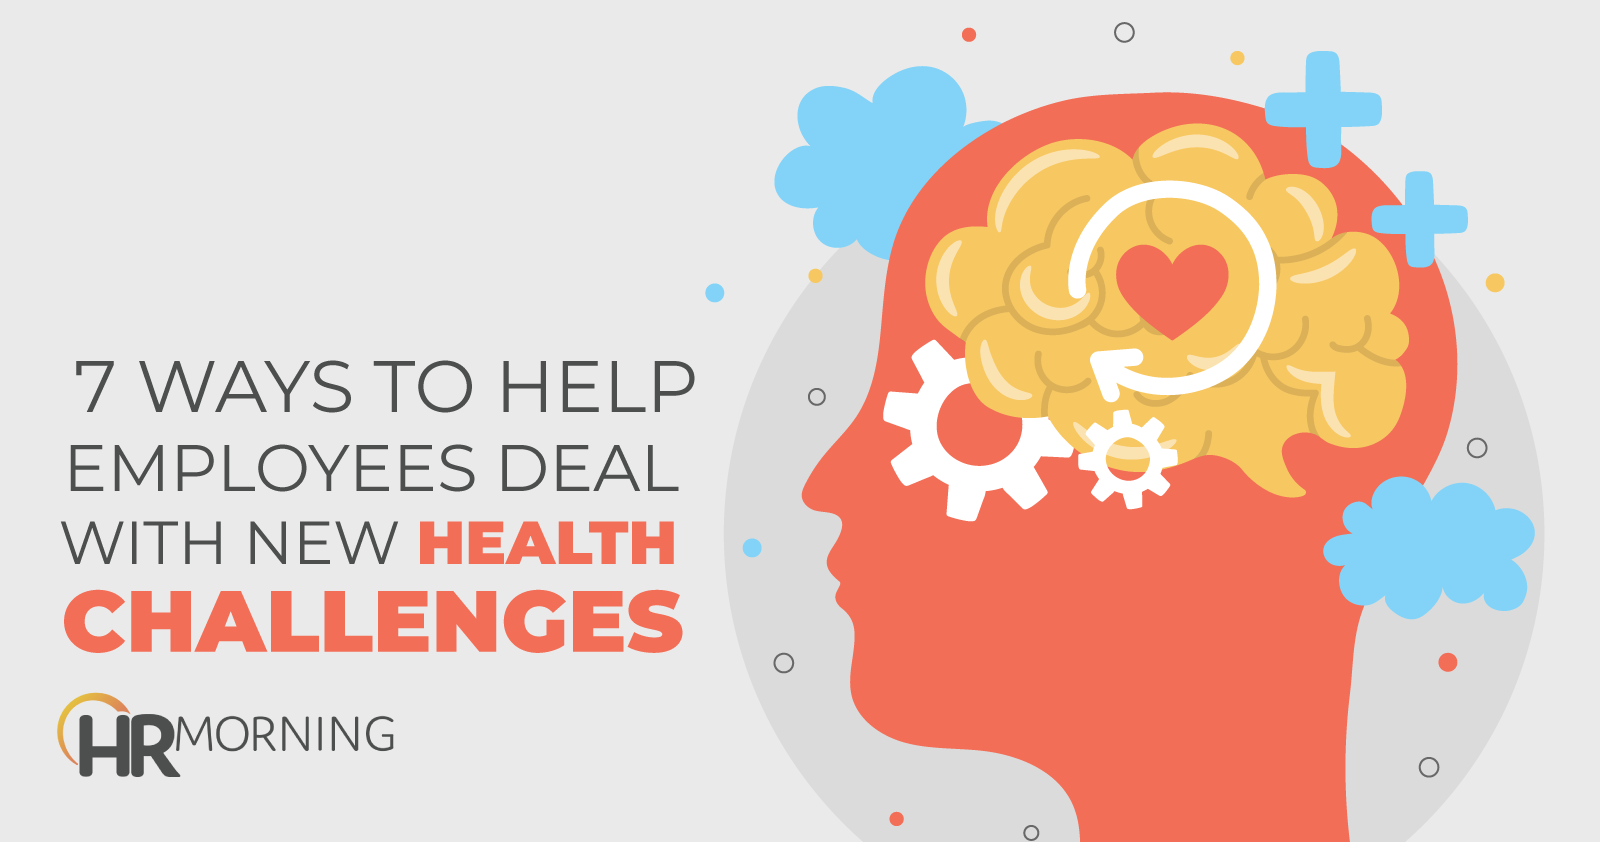 7 Ways To Help Employees Deal With New Health Challenges